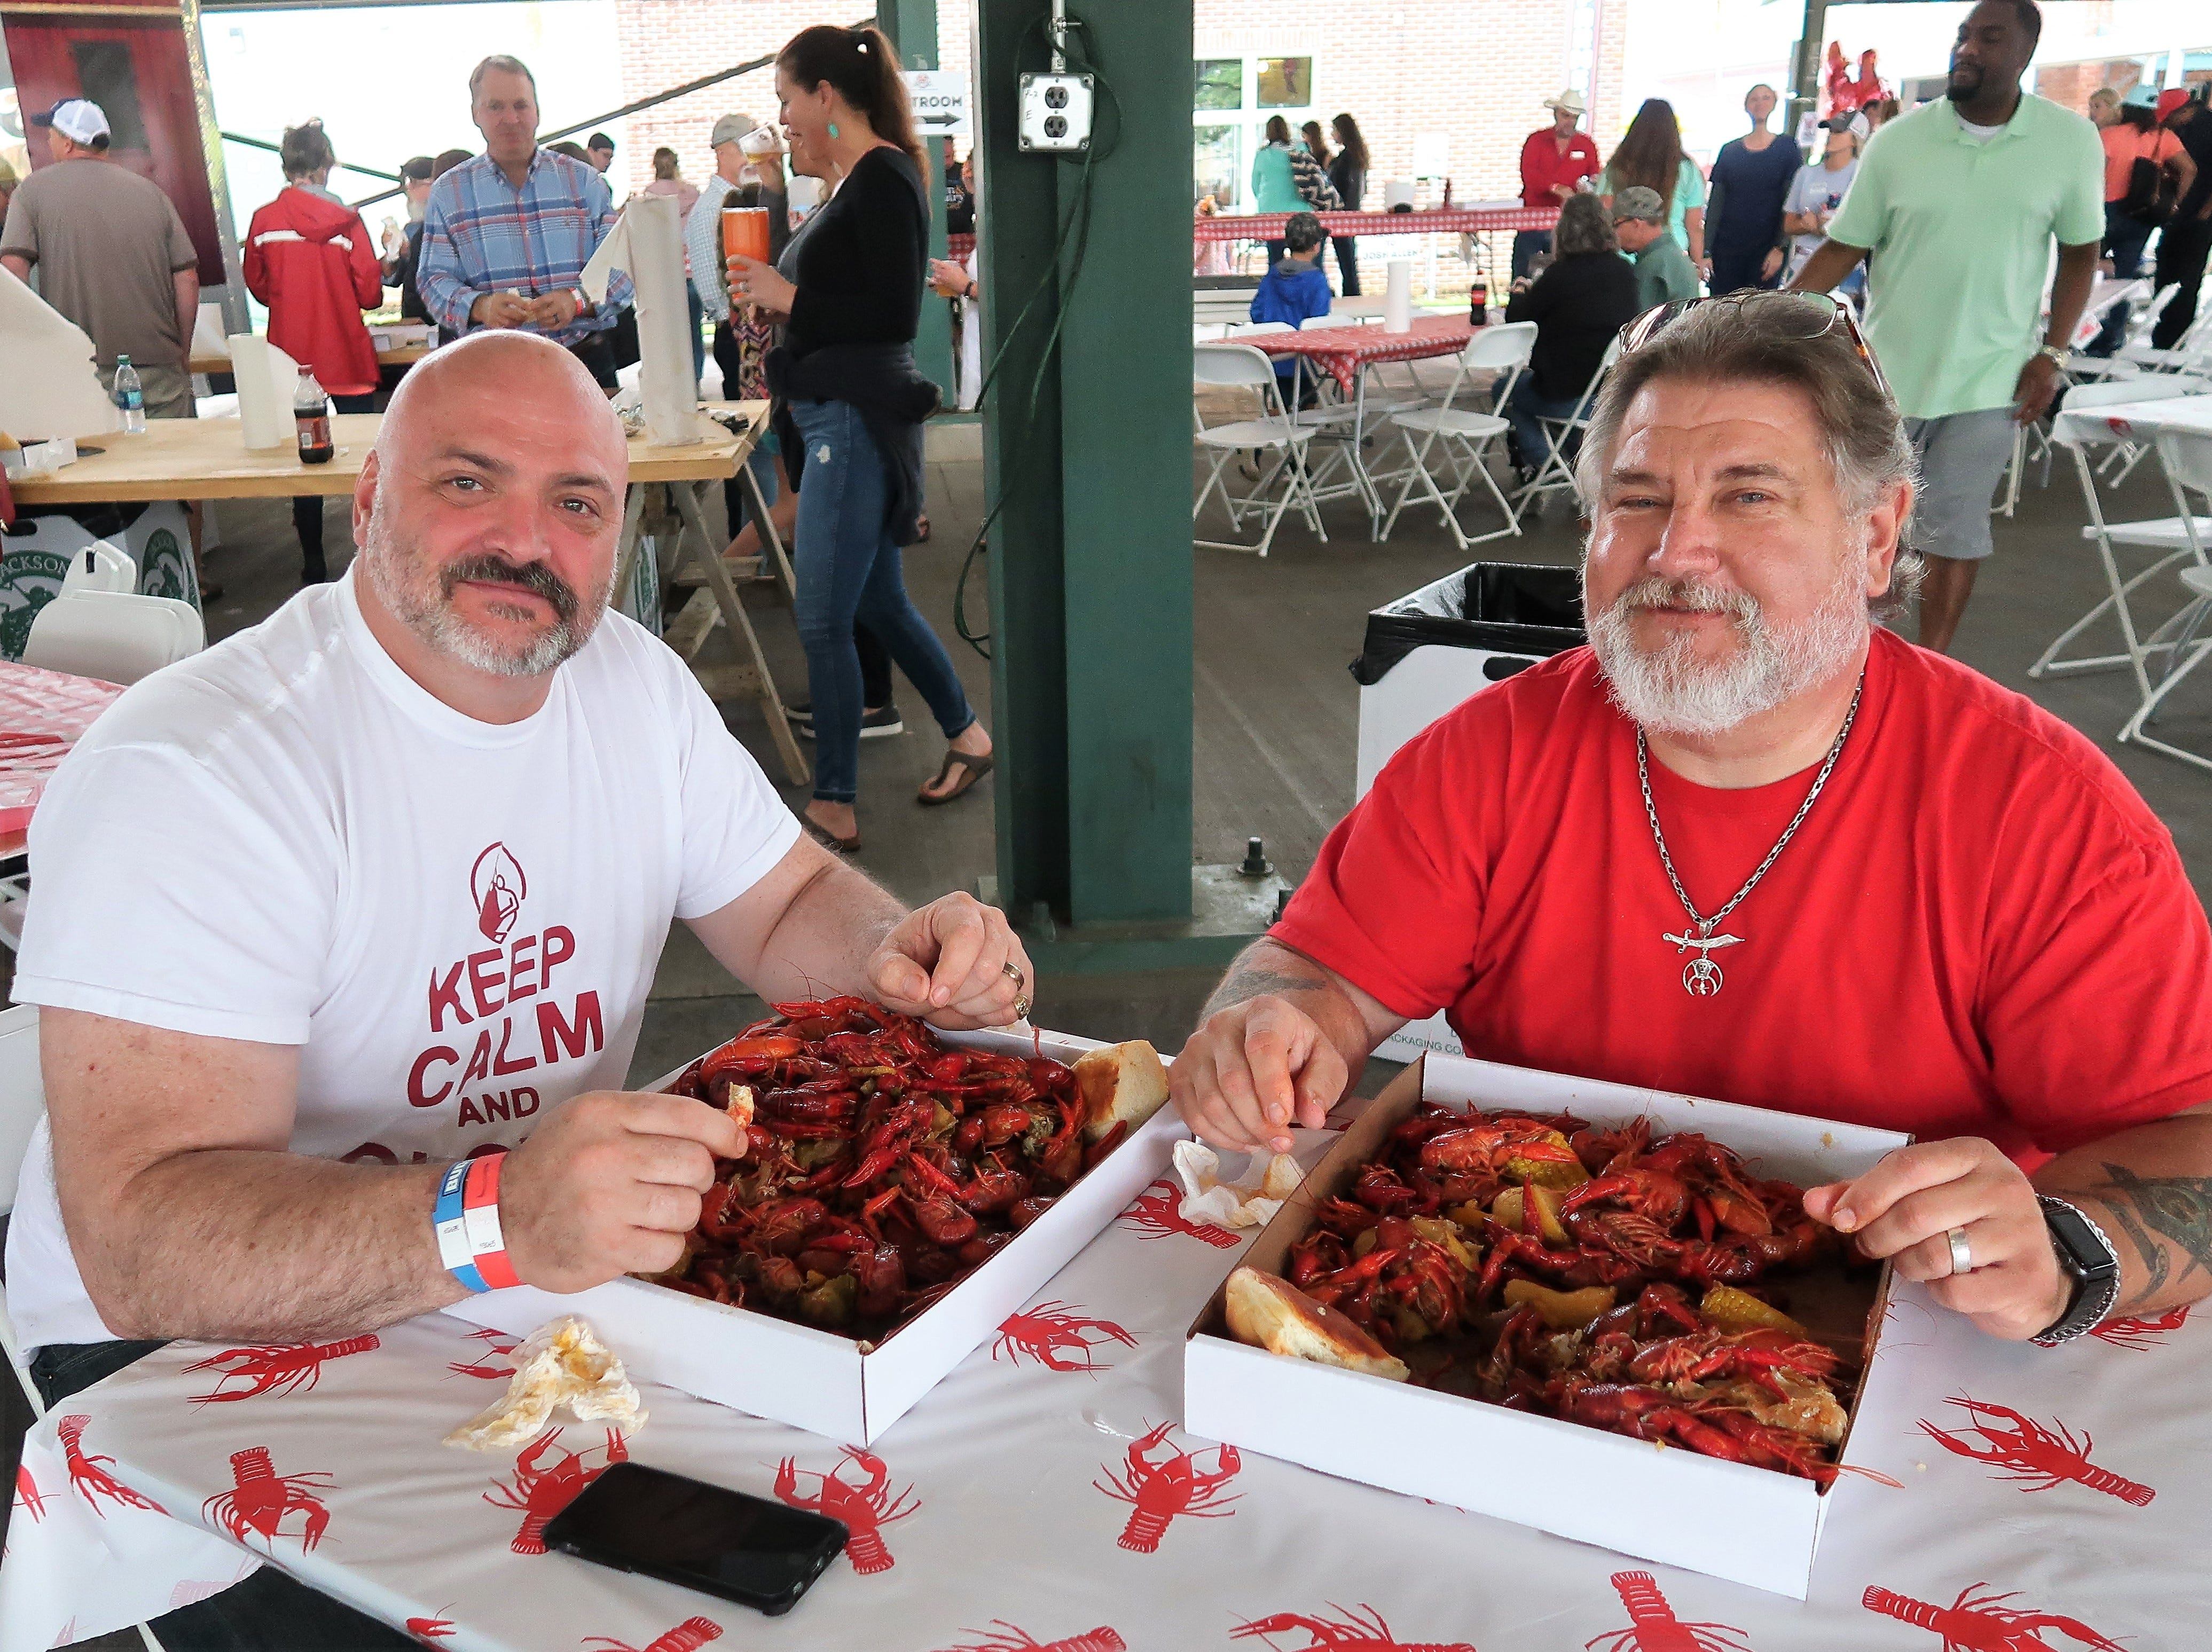 David Vince and Kemo Jackson sit down with their platters of crawfish at the Second Annual Crawfest fundraiser for the Scarlet Rope Project at the West Tennessee Farmer's Market in Jackson on May 4, 2019.